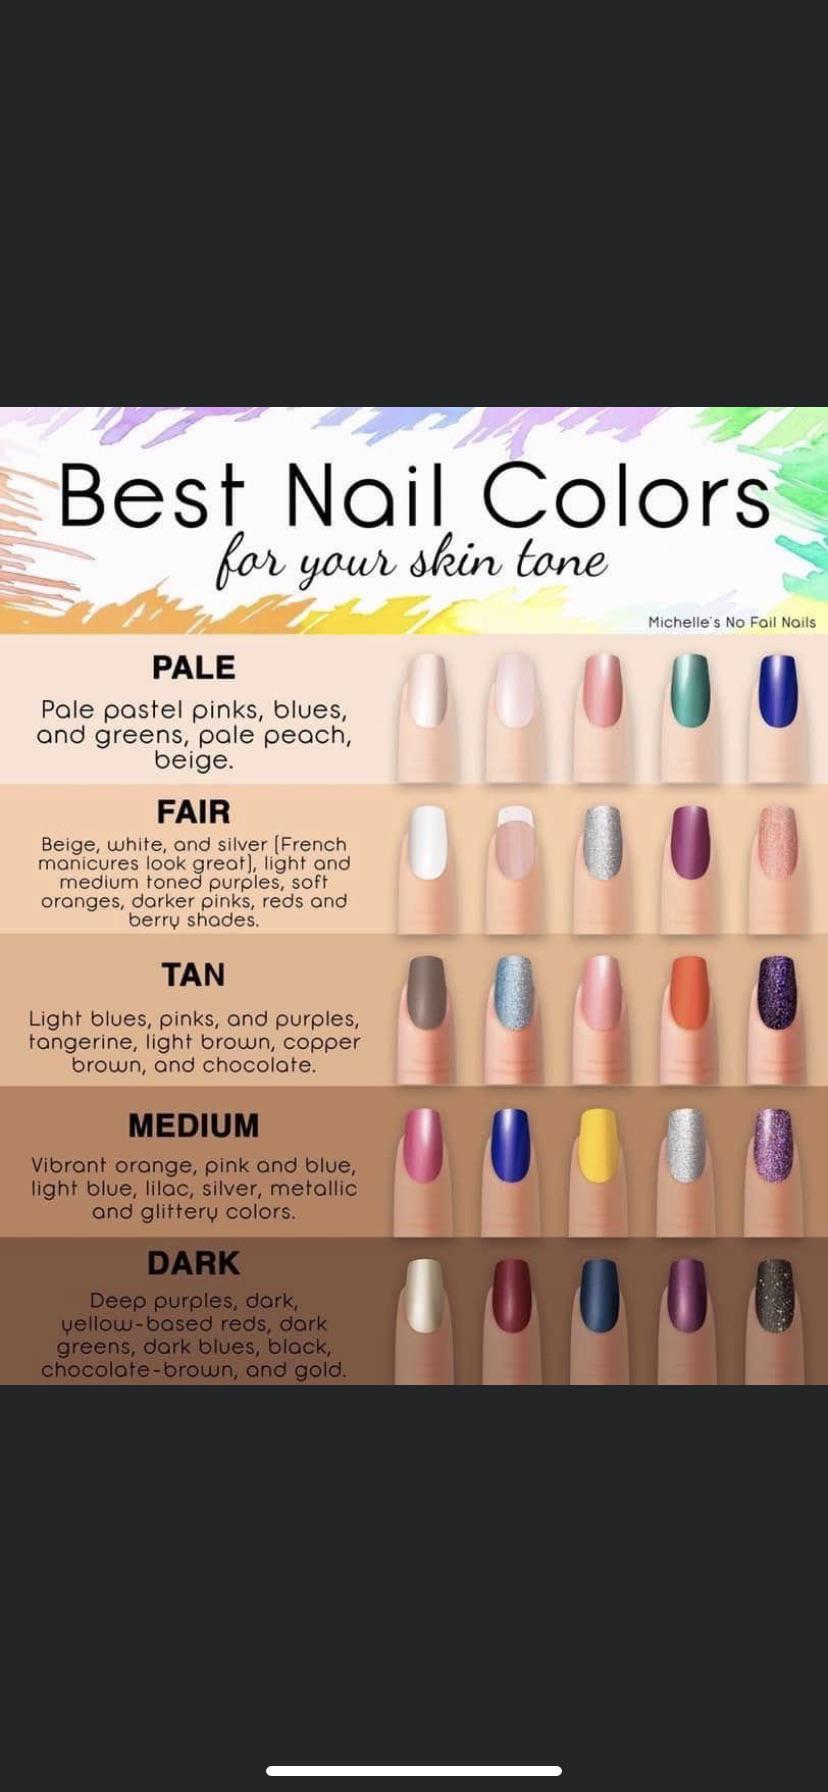 Best Nail Colors For Pale Skin : colors, Things, Wrong, Color, Street, Don't, Where, Begin., AntiMLM